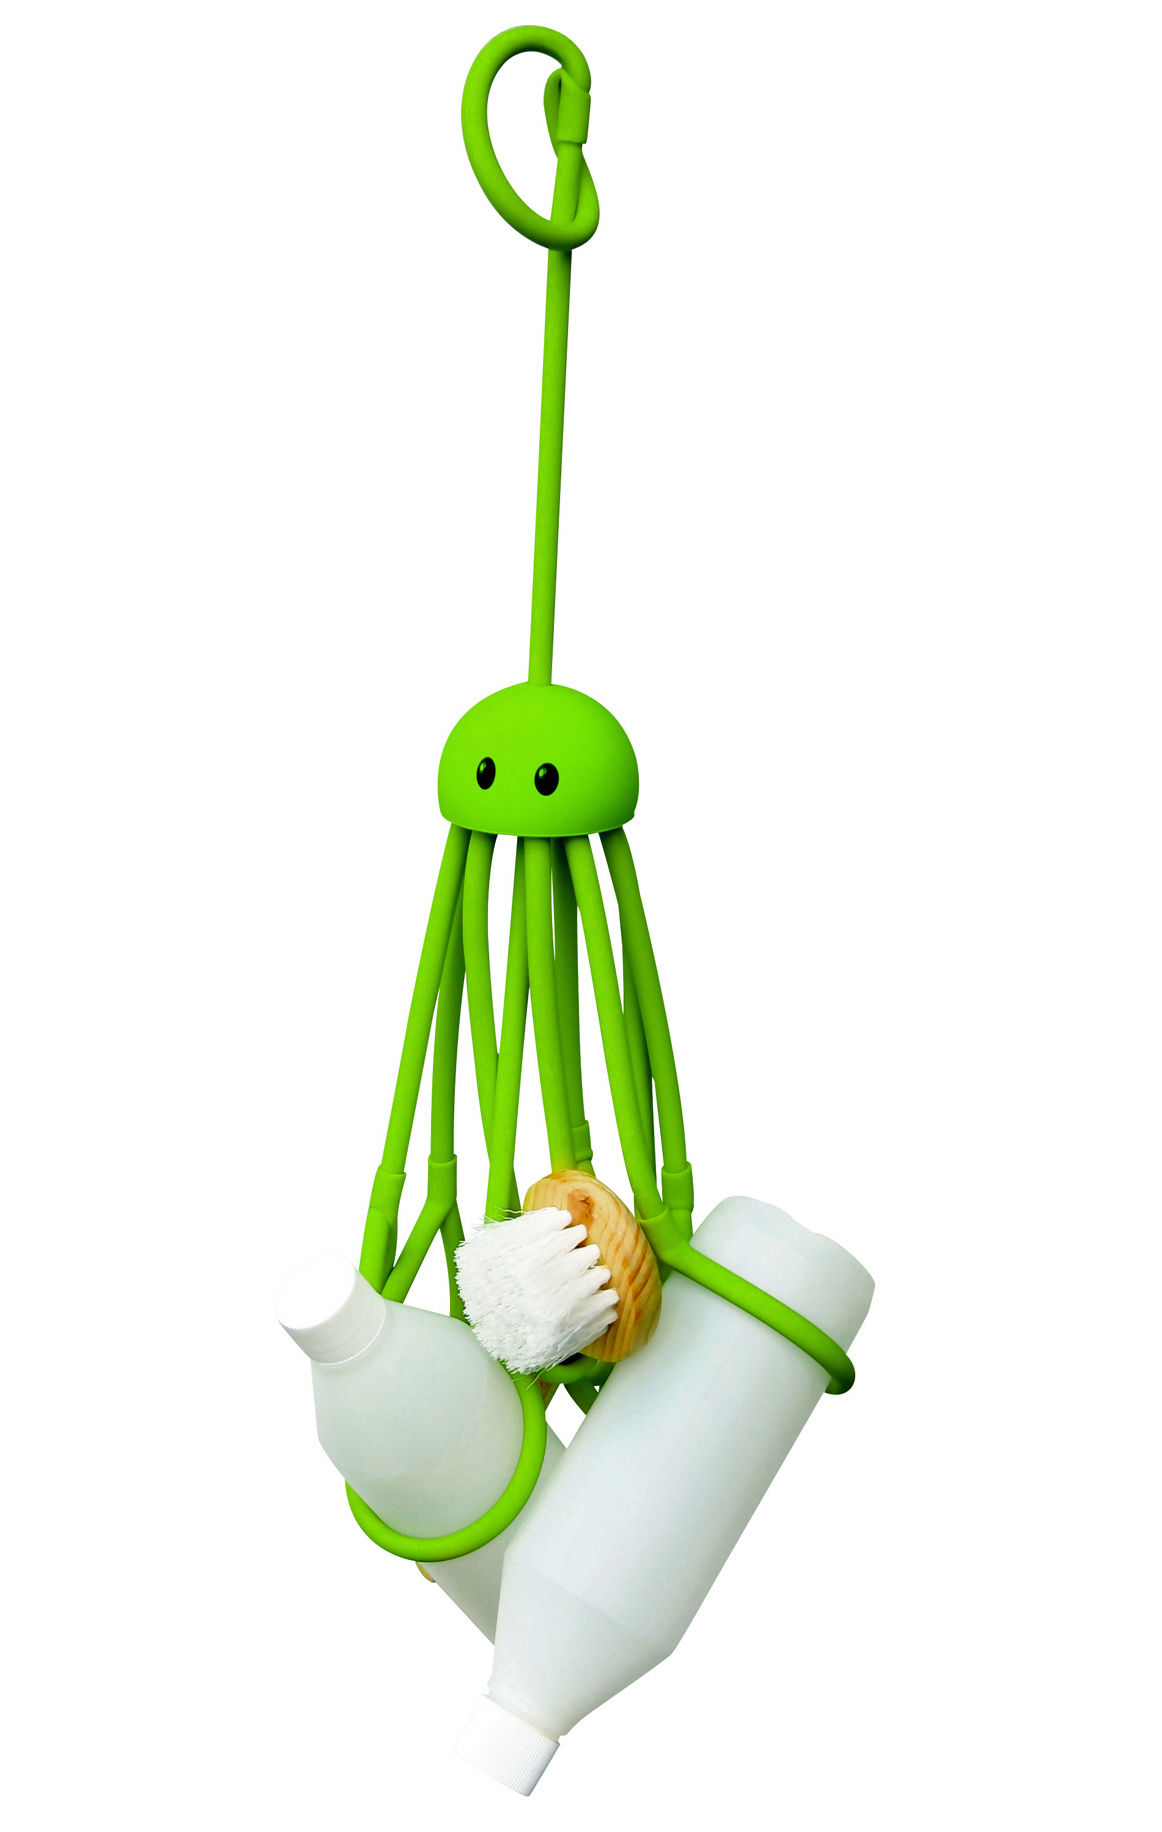 Decoration - For bathroom - Octopus Object organiser - Shower octopus by Pa Design - Green - Rubber